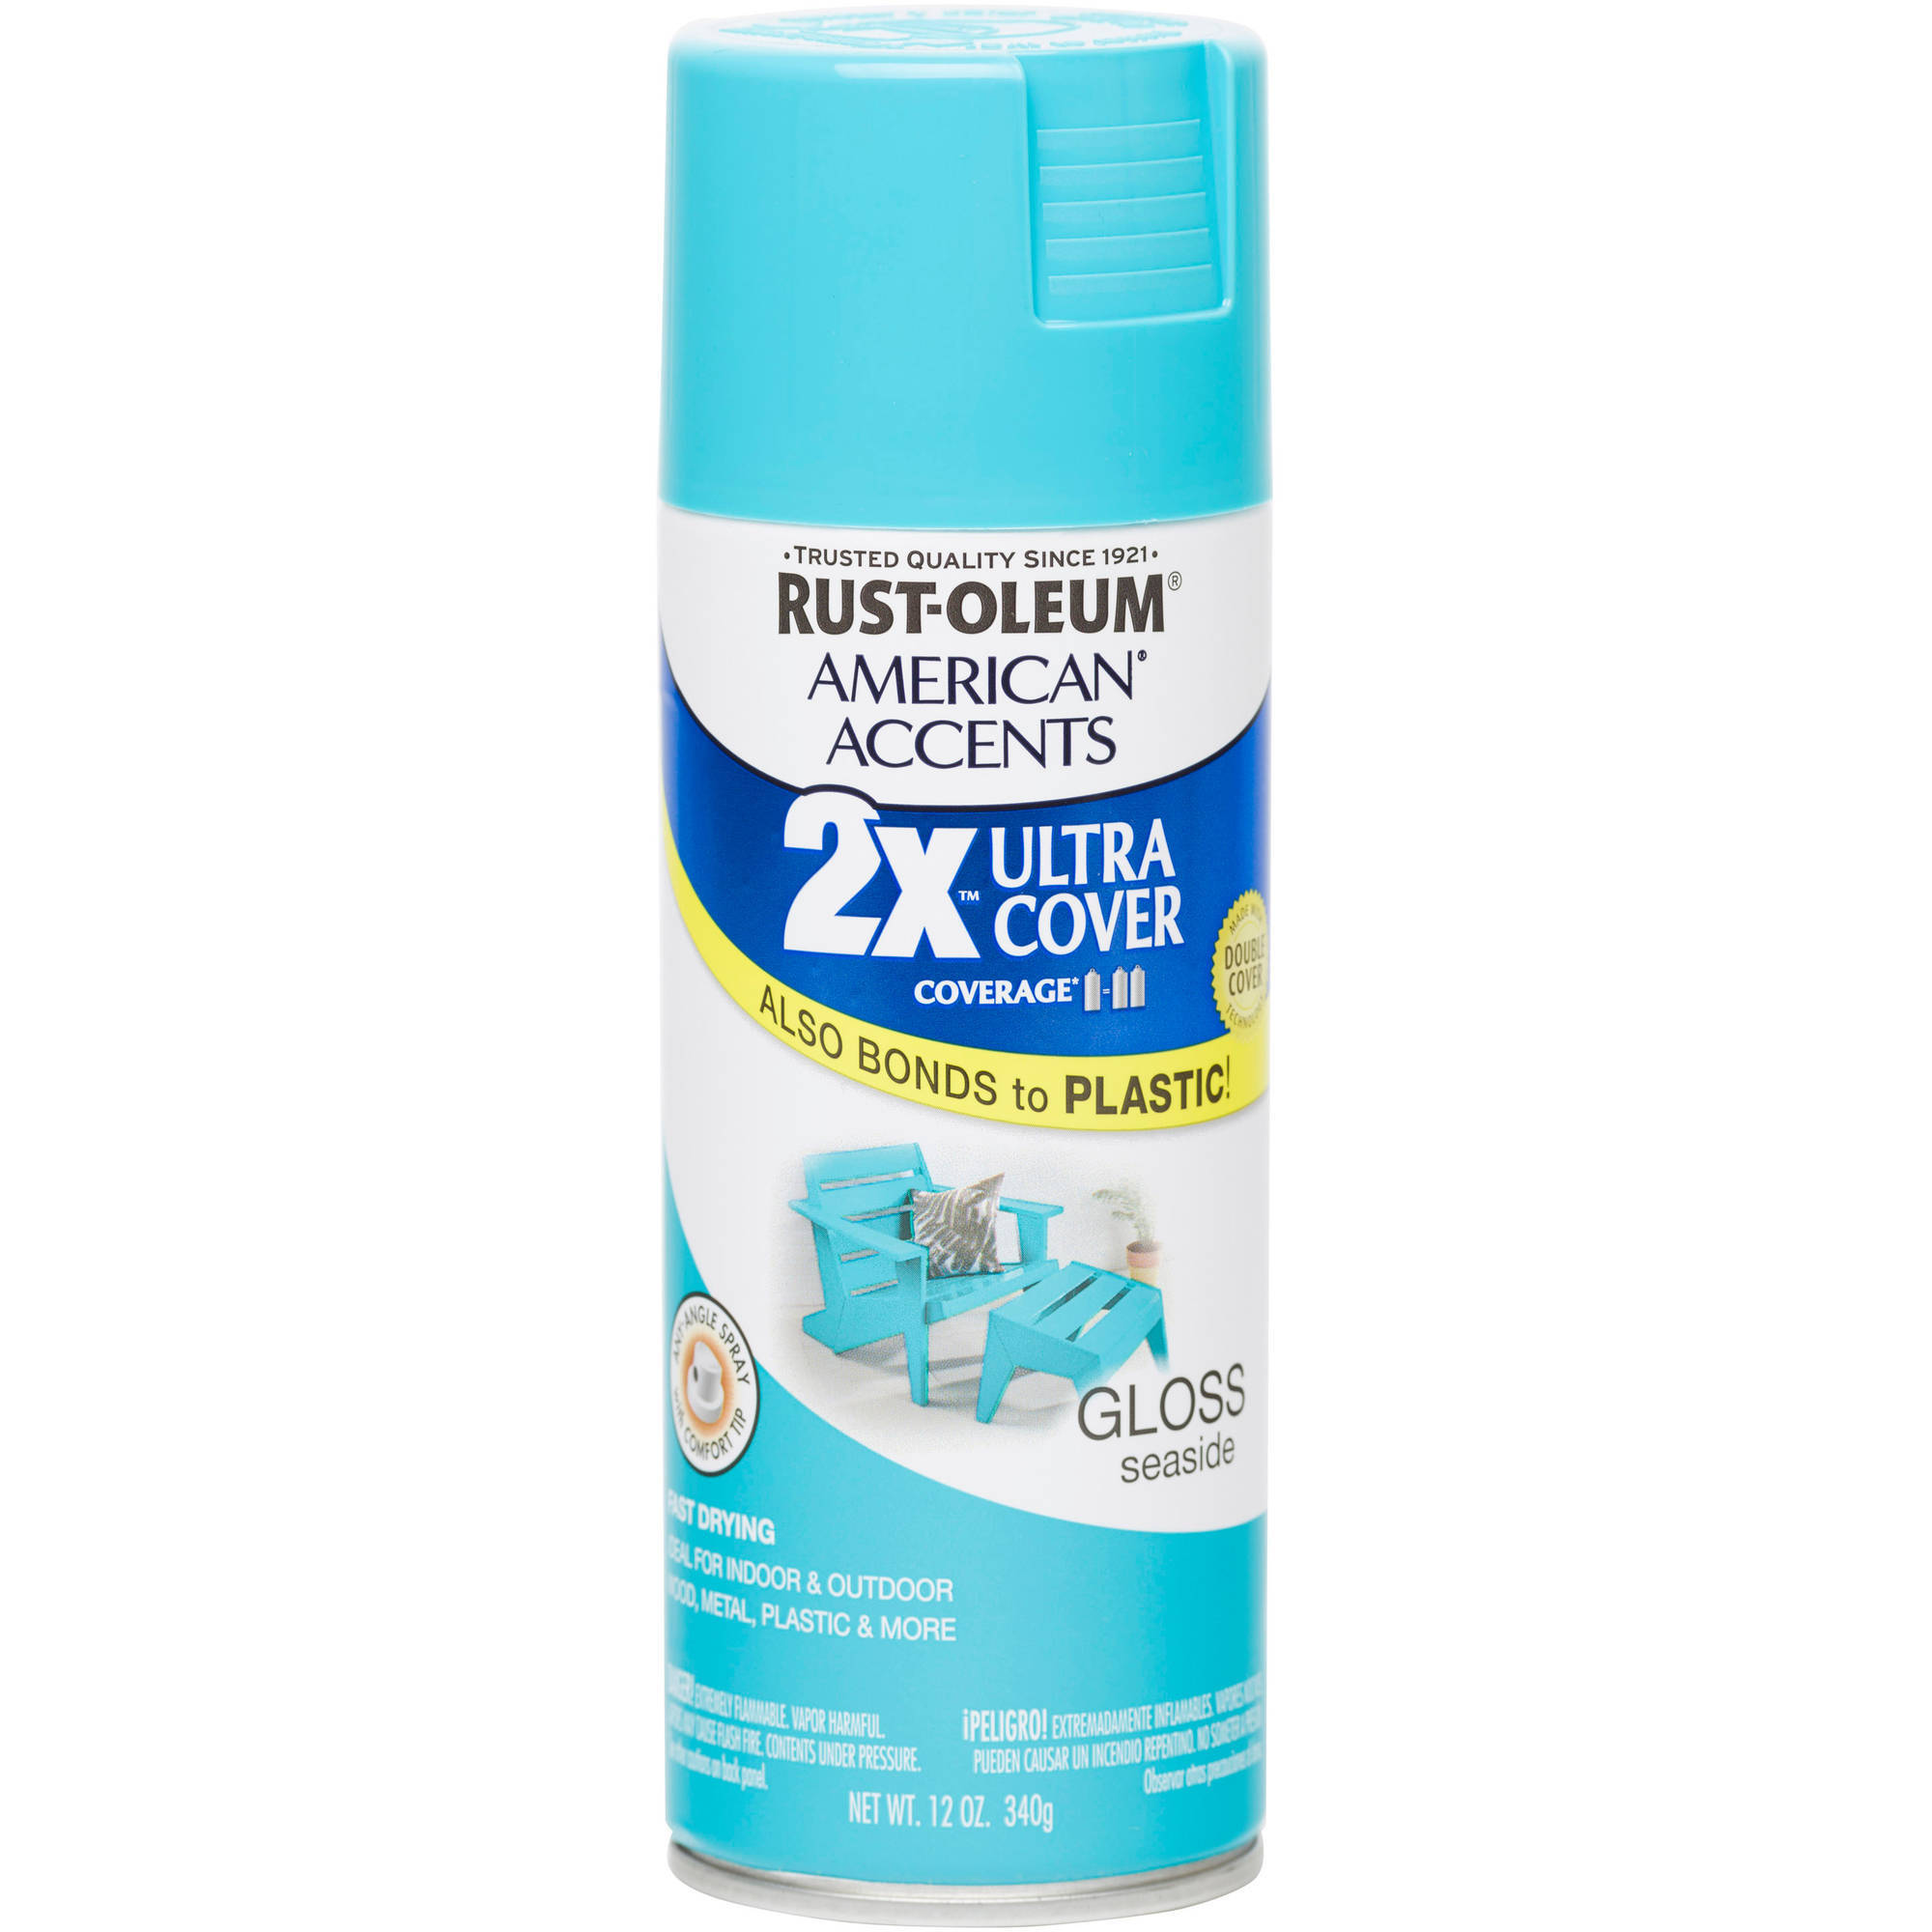 Rust-Oleum American Accents Ultra Cover 2X Gloss Seaside Spray Paint and Primer in 1, 12 oz